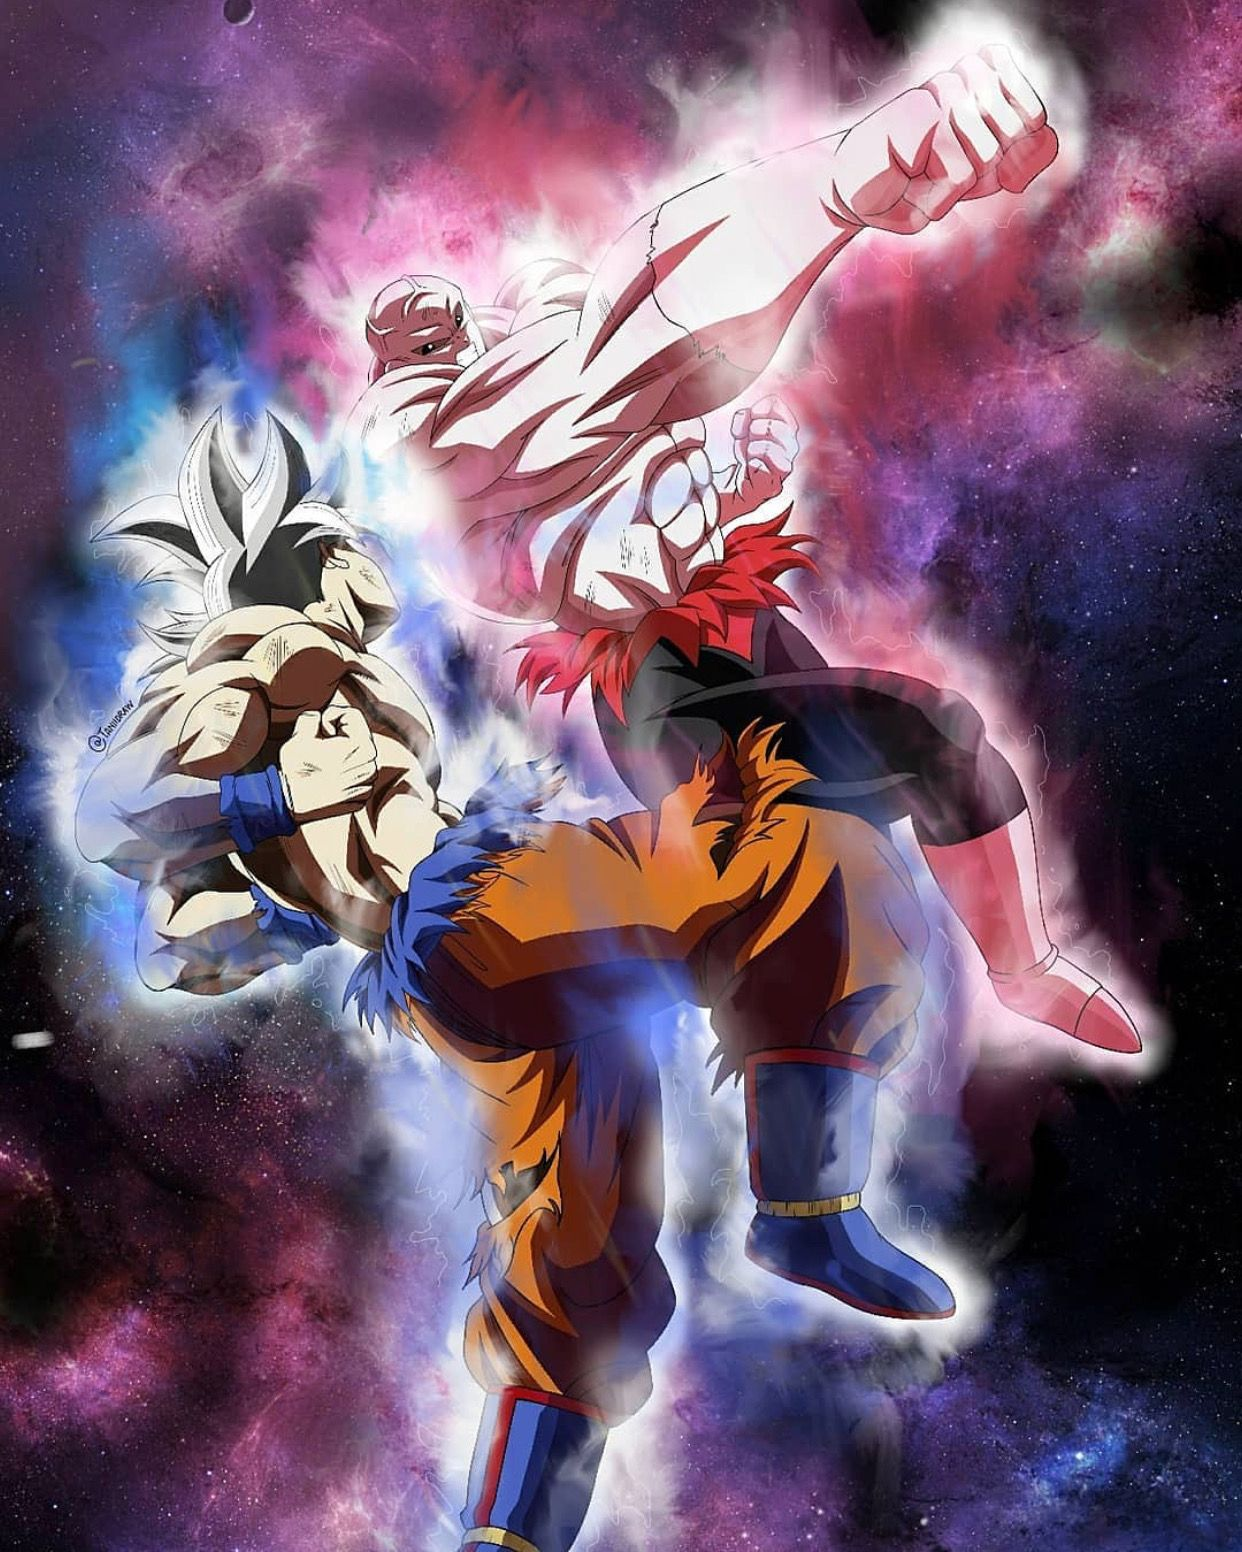 Goku Vs Jiren Doctrina Egoista By Lucario Strike Goku Vs Jiren Dragon Ball Artwork Goku Vs